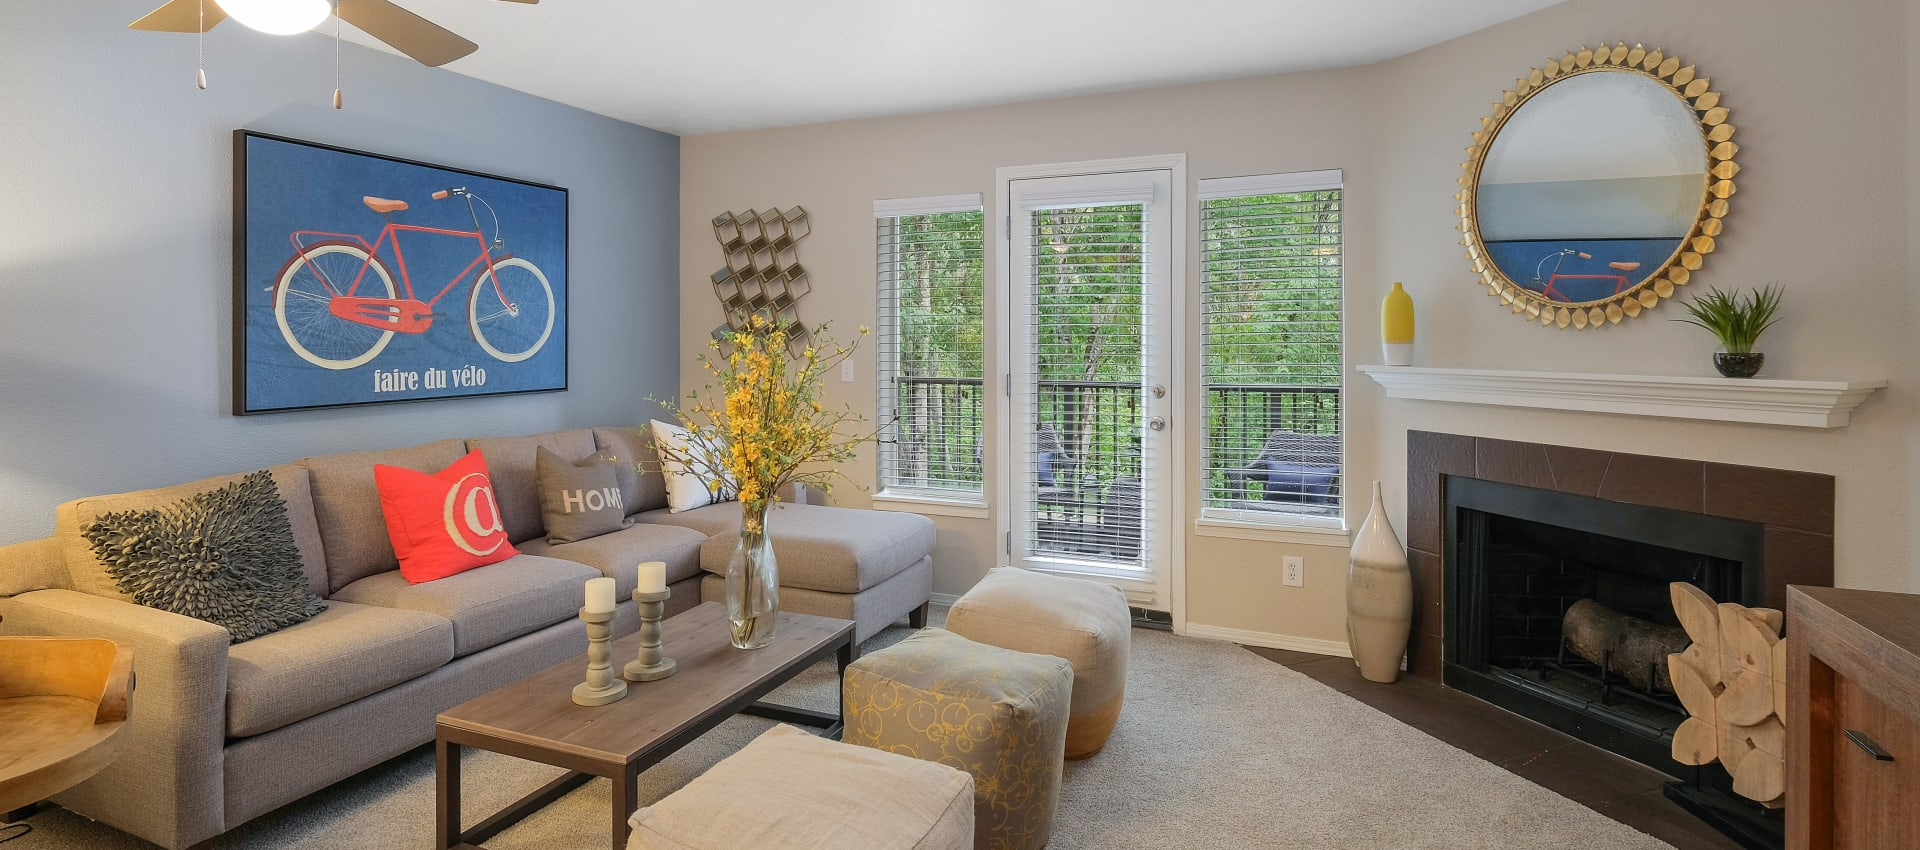 Living Room at Waterhouse Place in Beaverton, OR